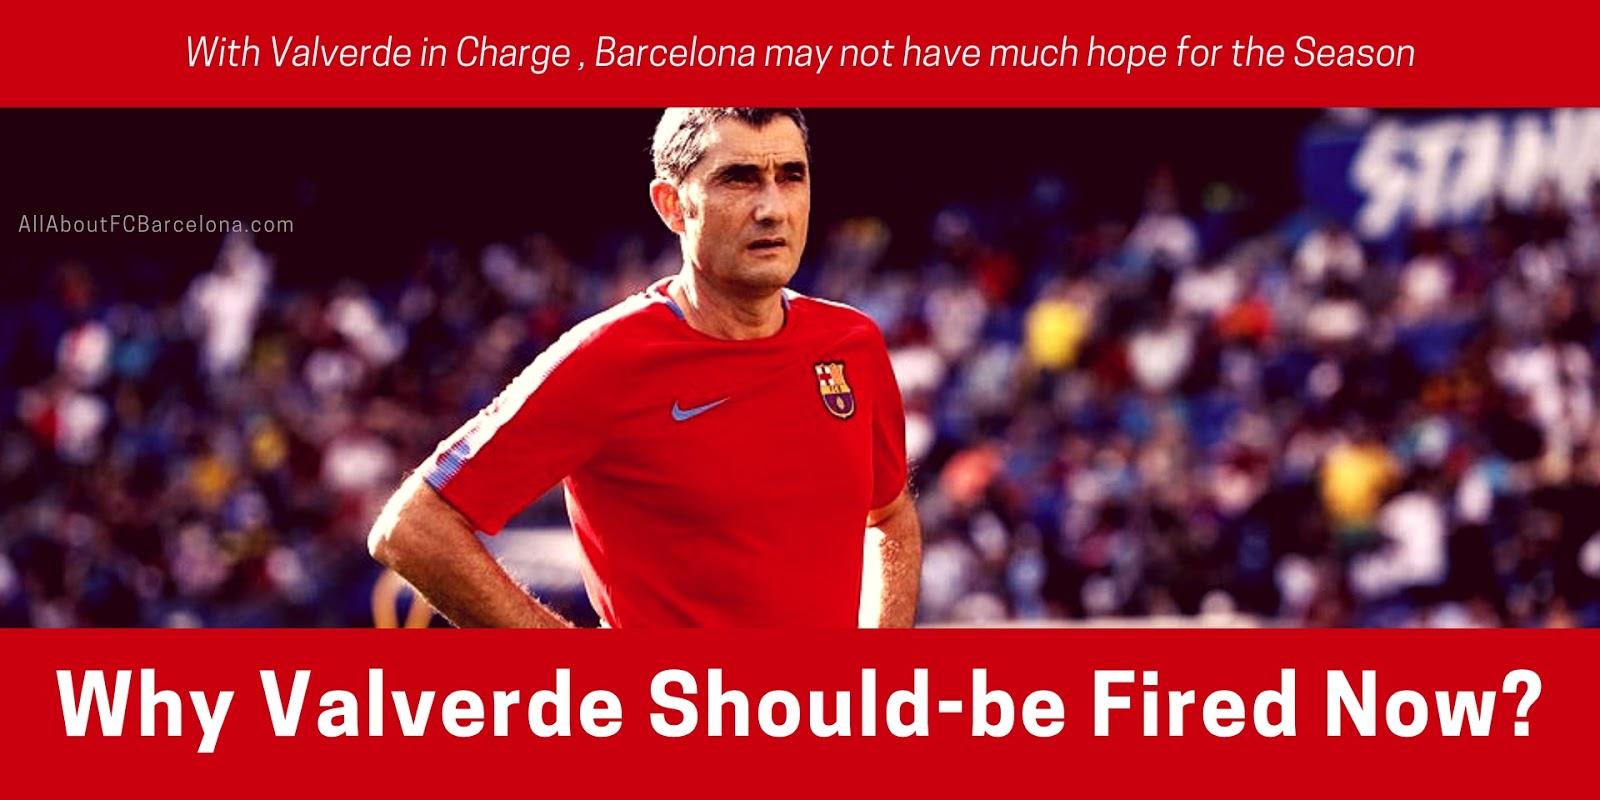 Why Valverde Should-be Fired Now to Turn the Tables?